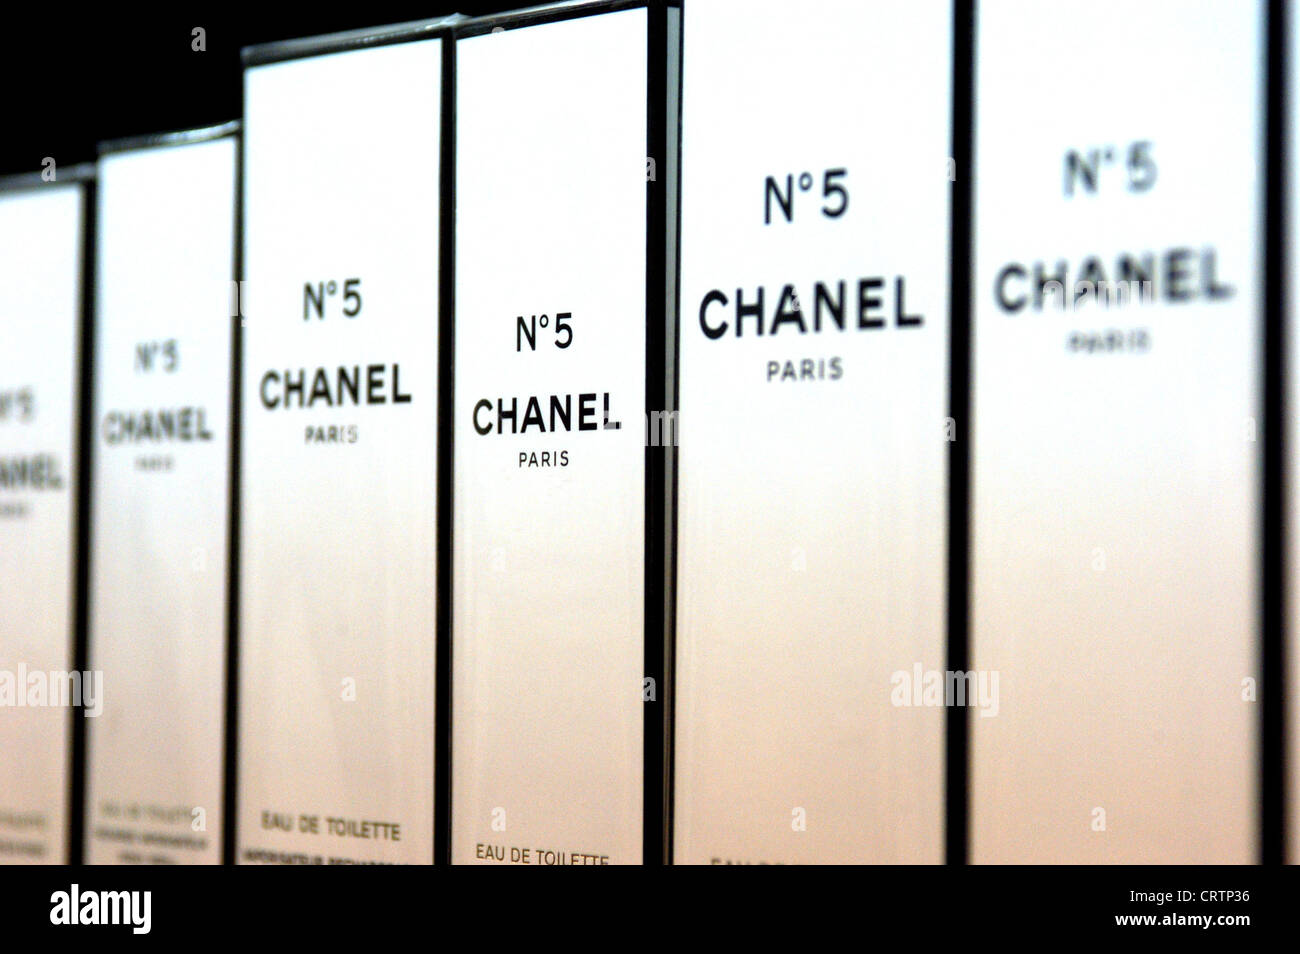 Berlin Boxes Of Perfume Chanel No 5 Stock Photo 49102010 Alamy